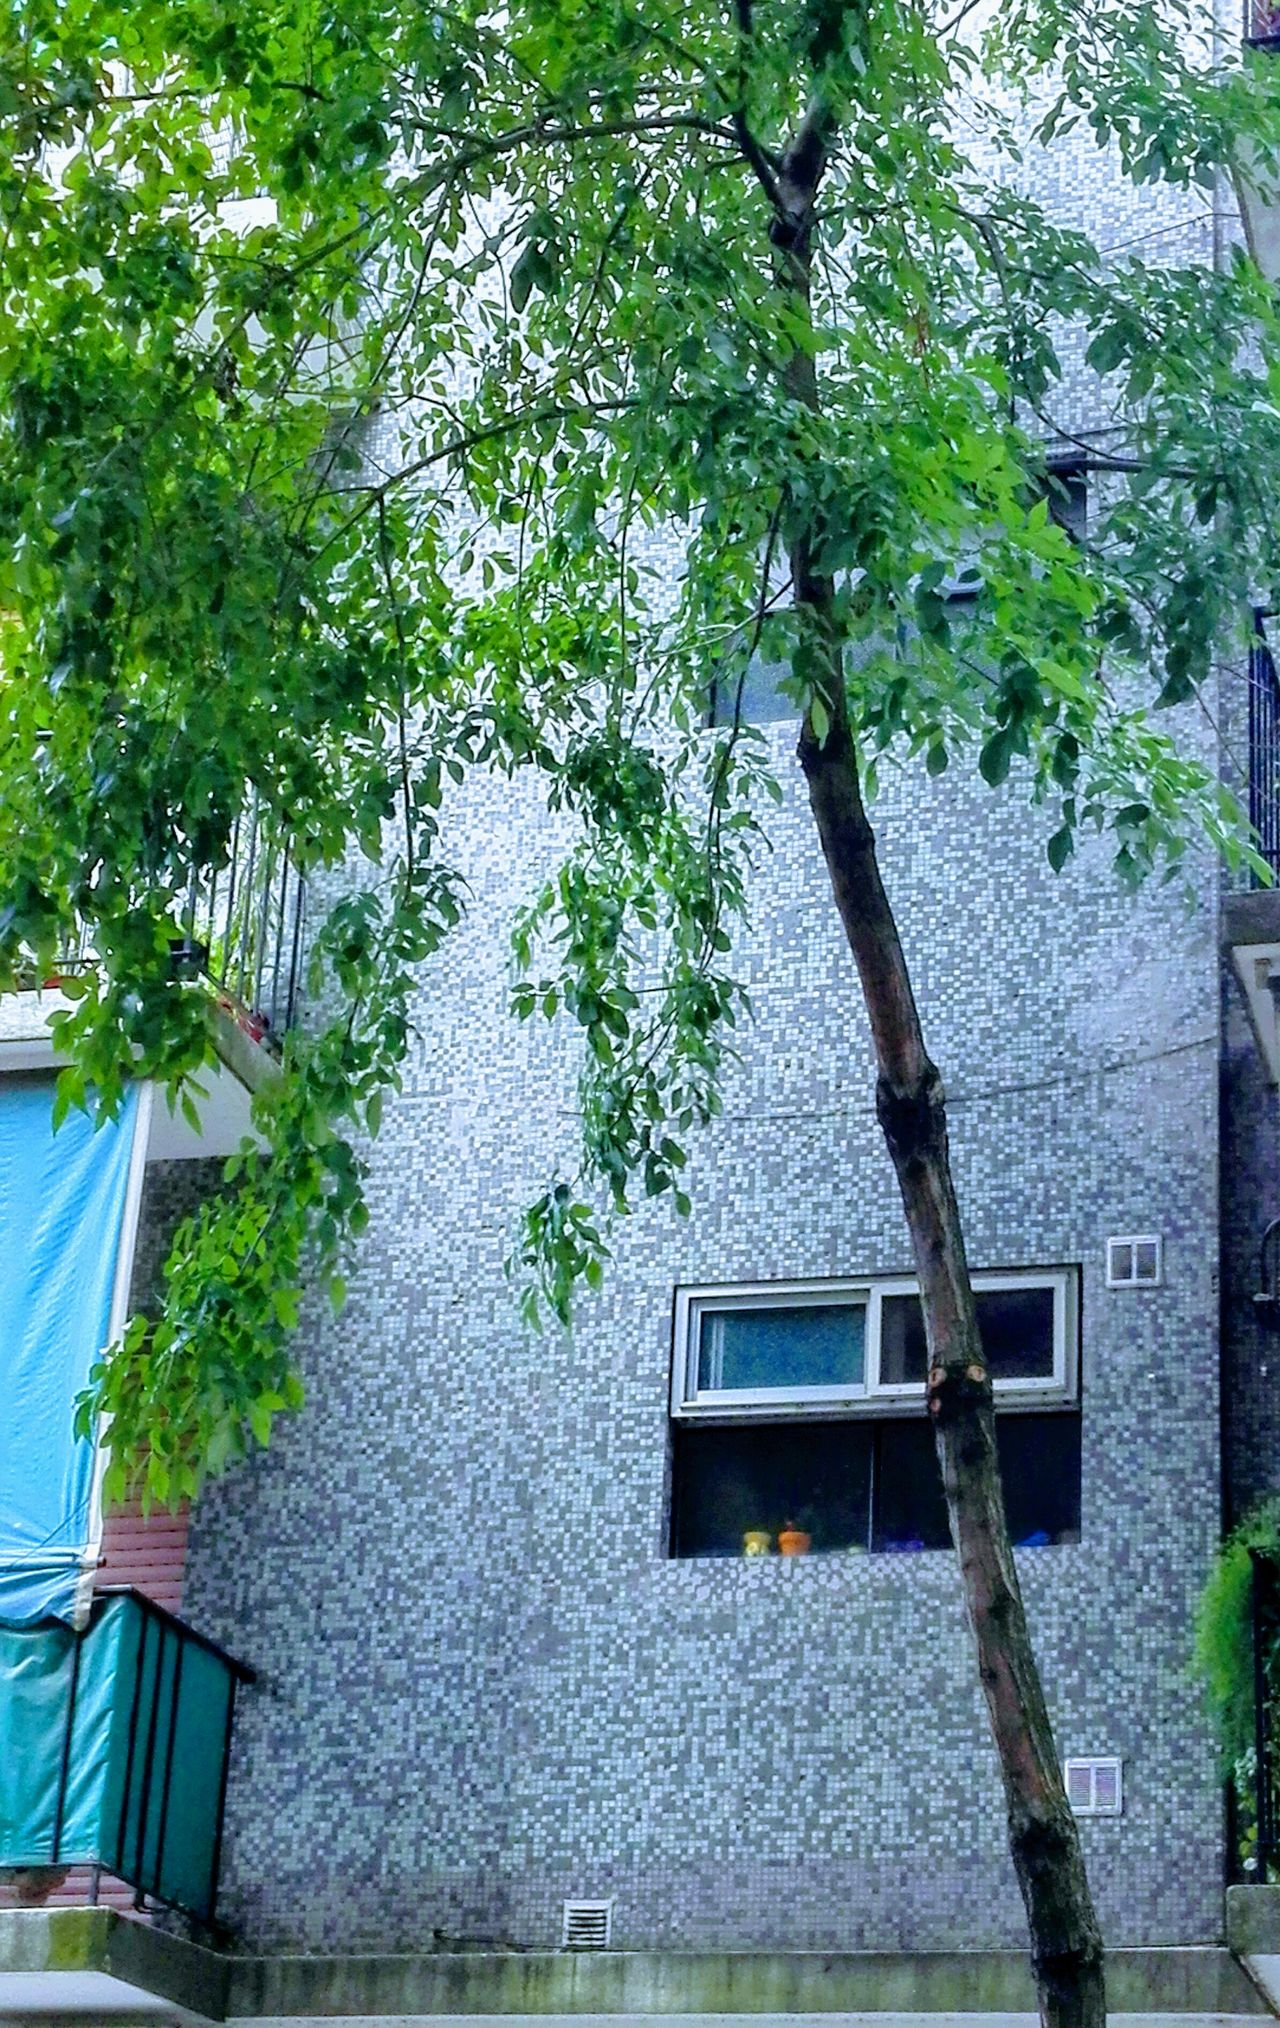 Urban Exploration Cityexplorer City Tree Building Exterior Built Structure Architecture Growth No People Green Color Outdoors Day Branch Ivy Nature Sky